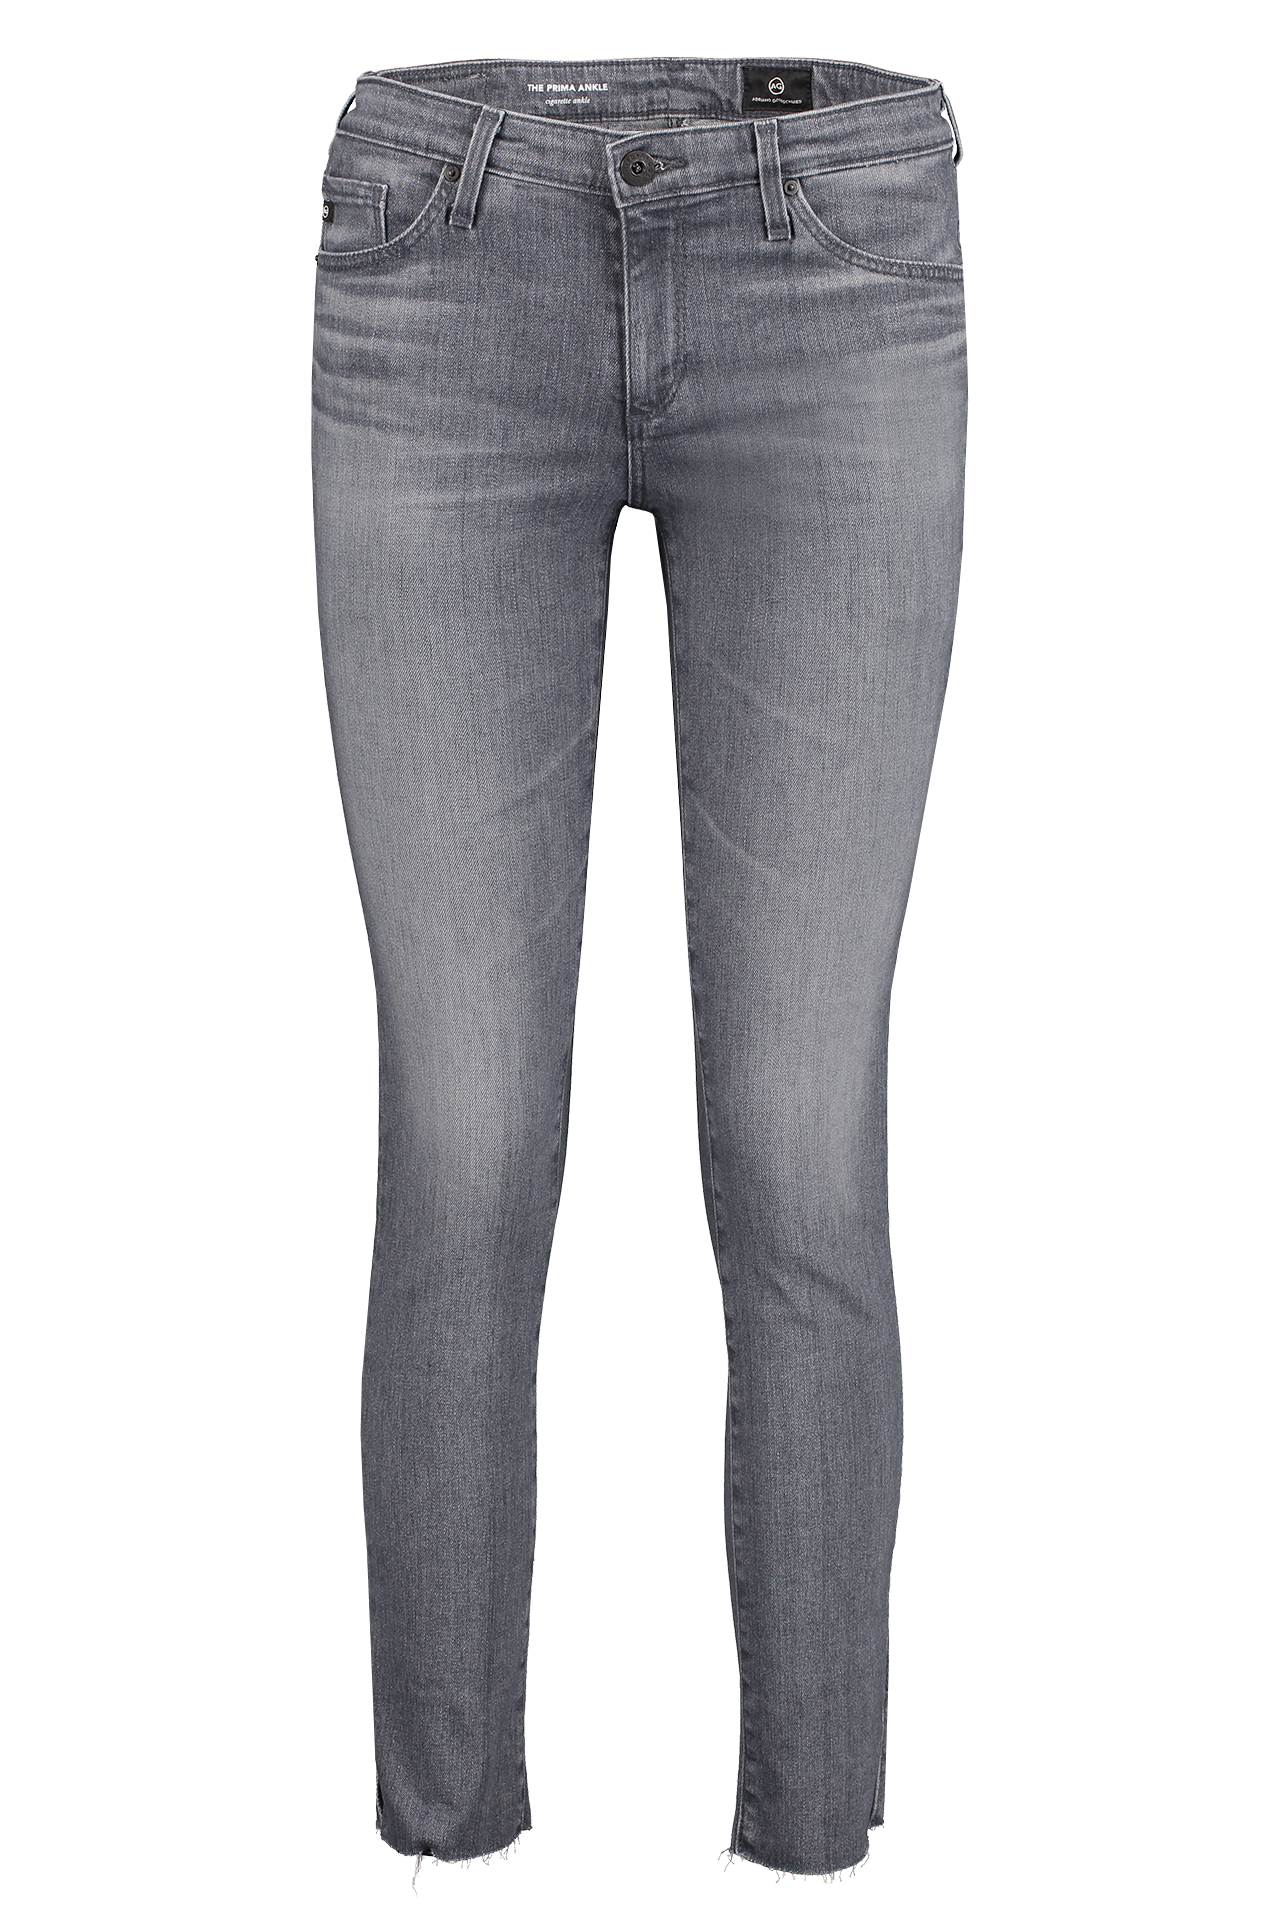 Front image of AG Women's Prima Ankle Gray Light Jeans